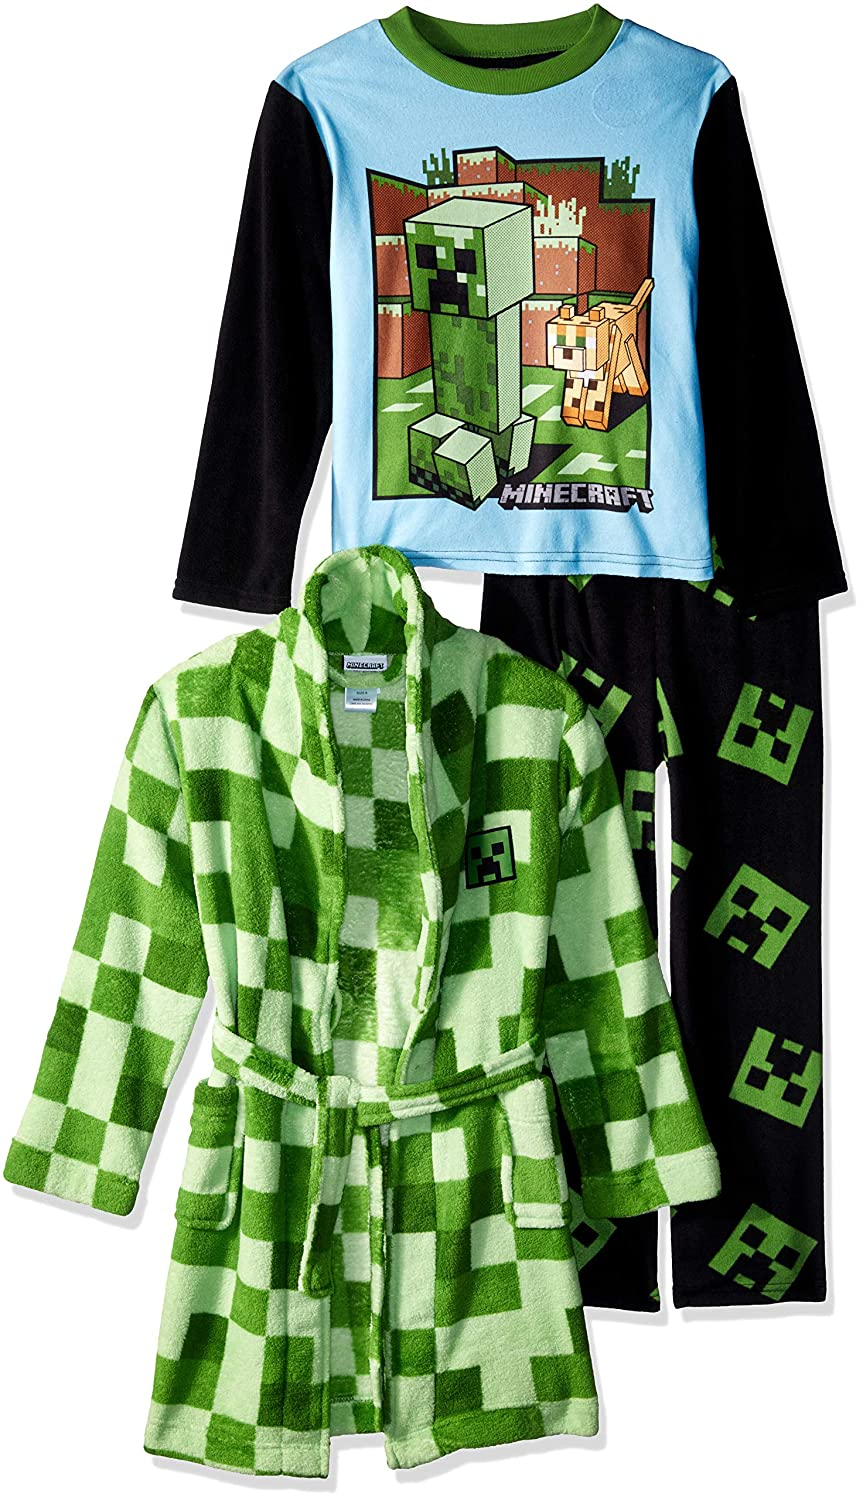 Minecraft Boys' 3 Piece Robe Pajama Set